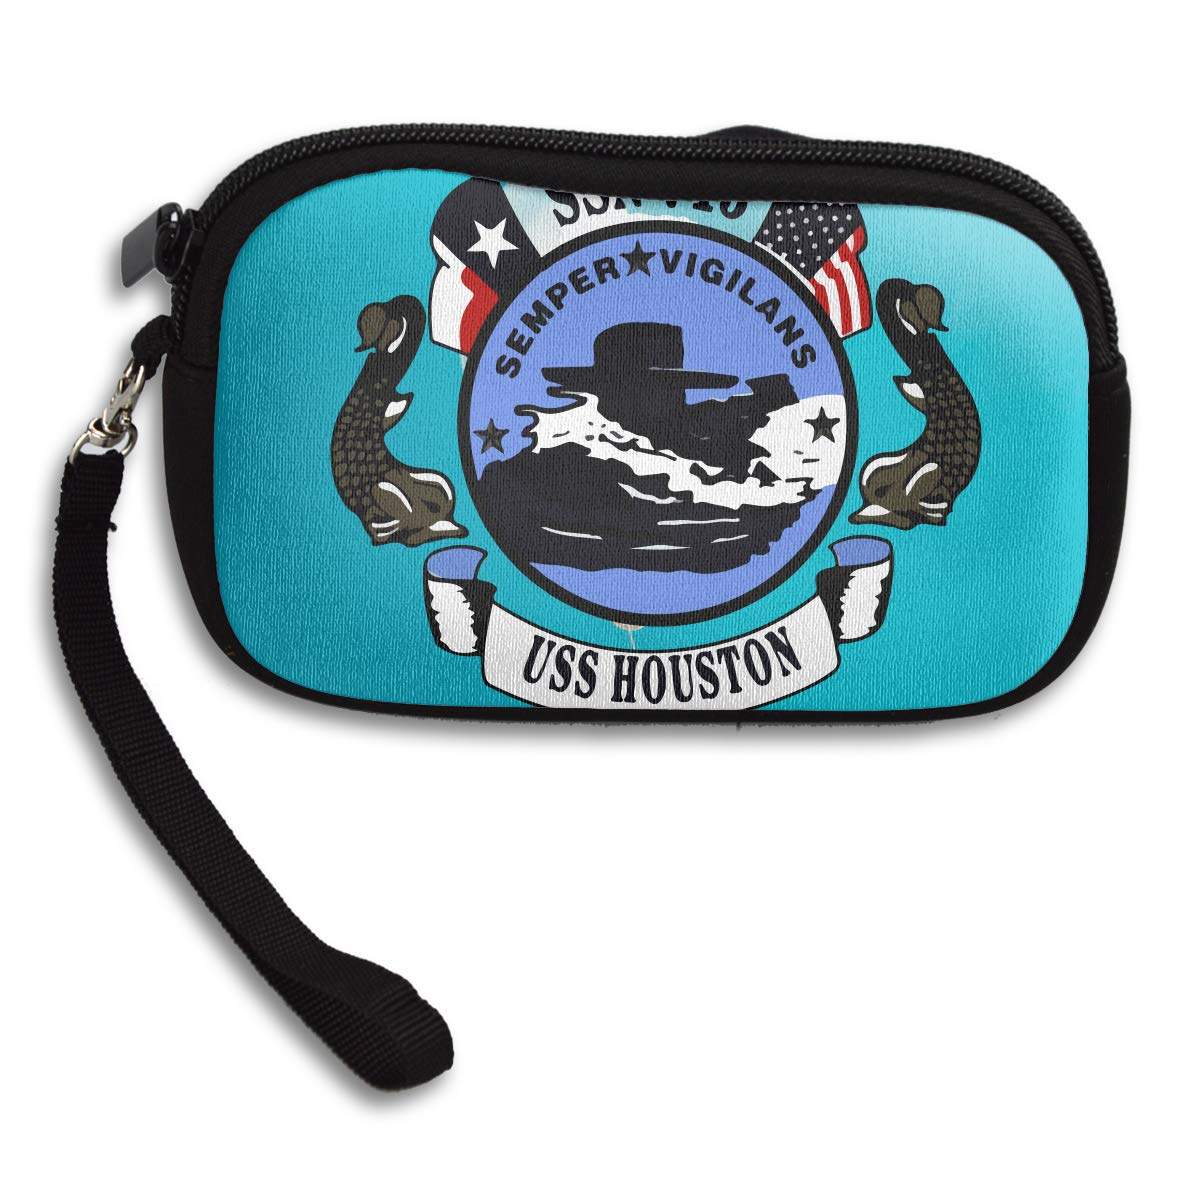 USS HOUSTON Deluxe Printing Small Purse Portable Receiving Bag